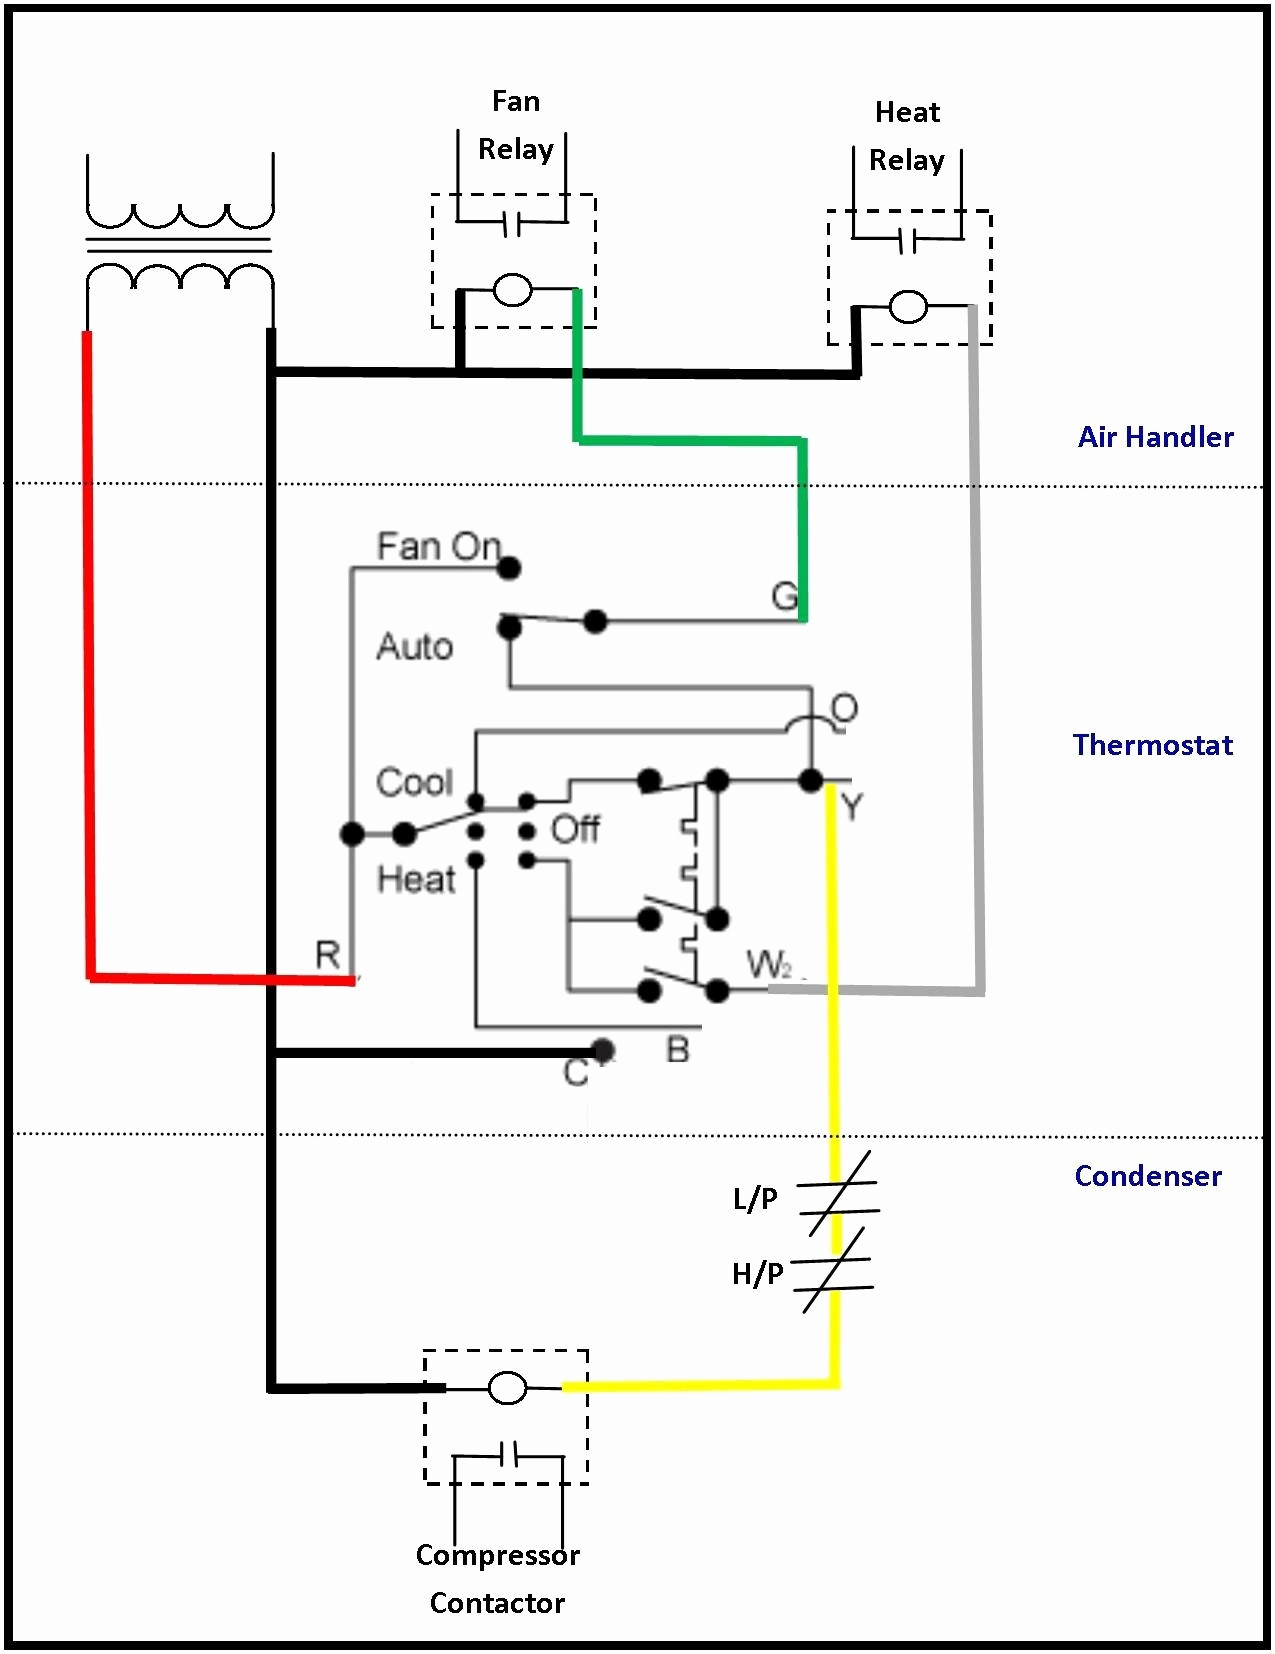 Rheem Heat Pump Contactor Wiring Diagram | Wiring Diagram - Rheem Heat Pump Wiring Diagram